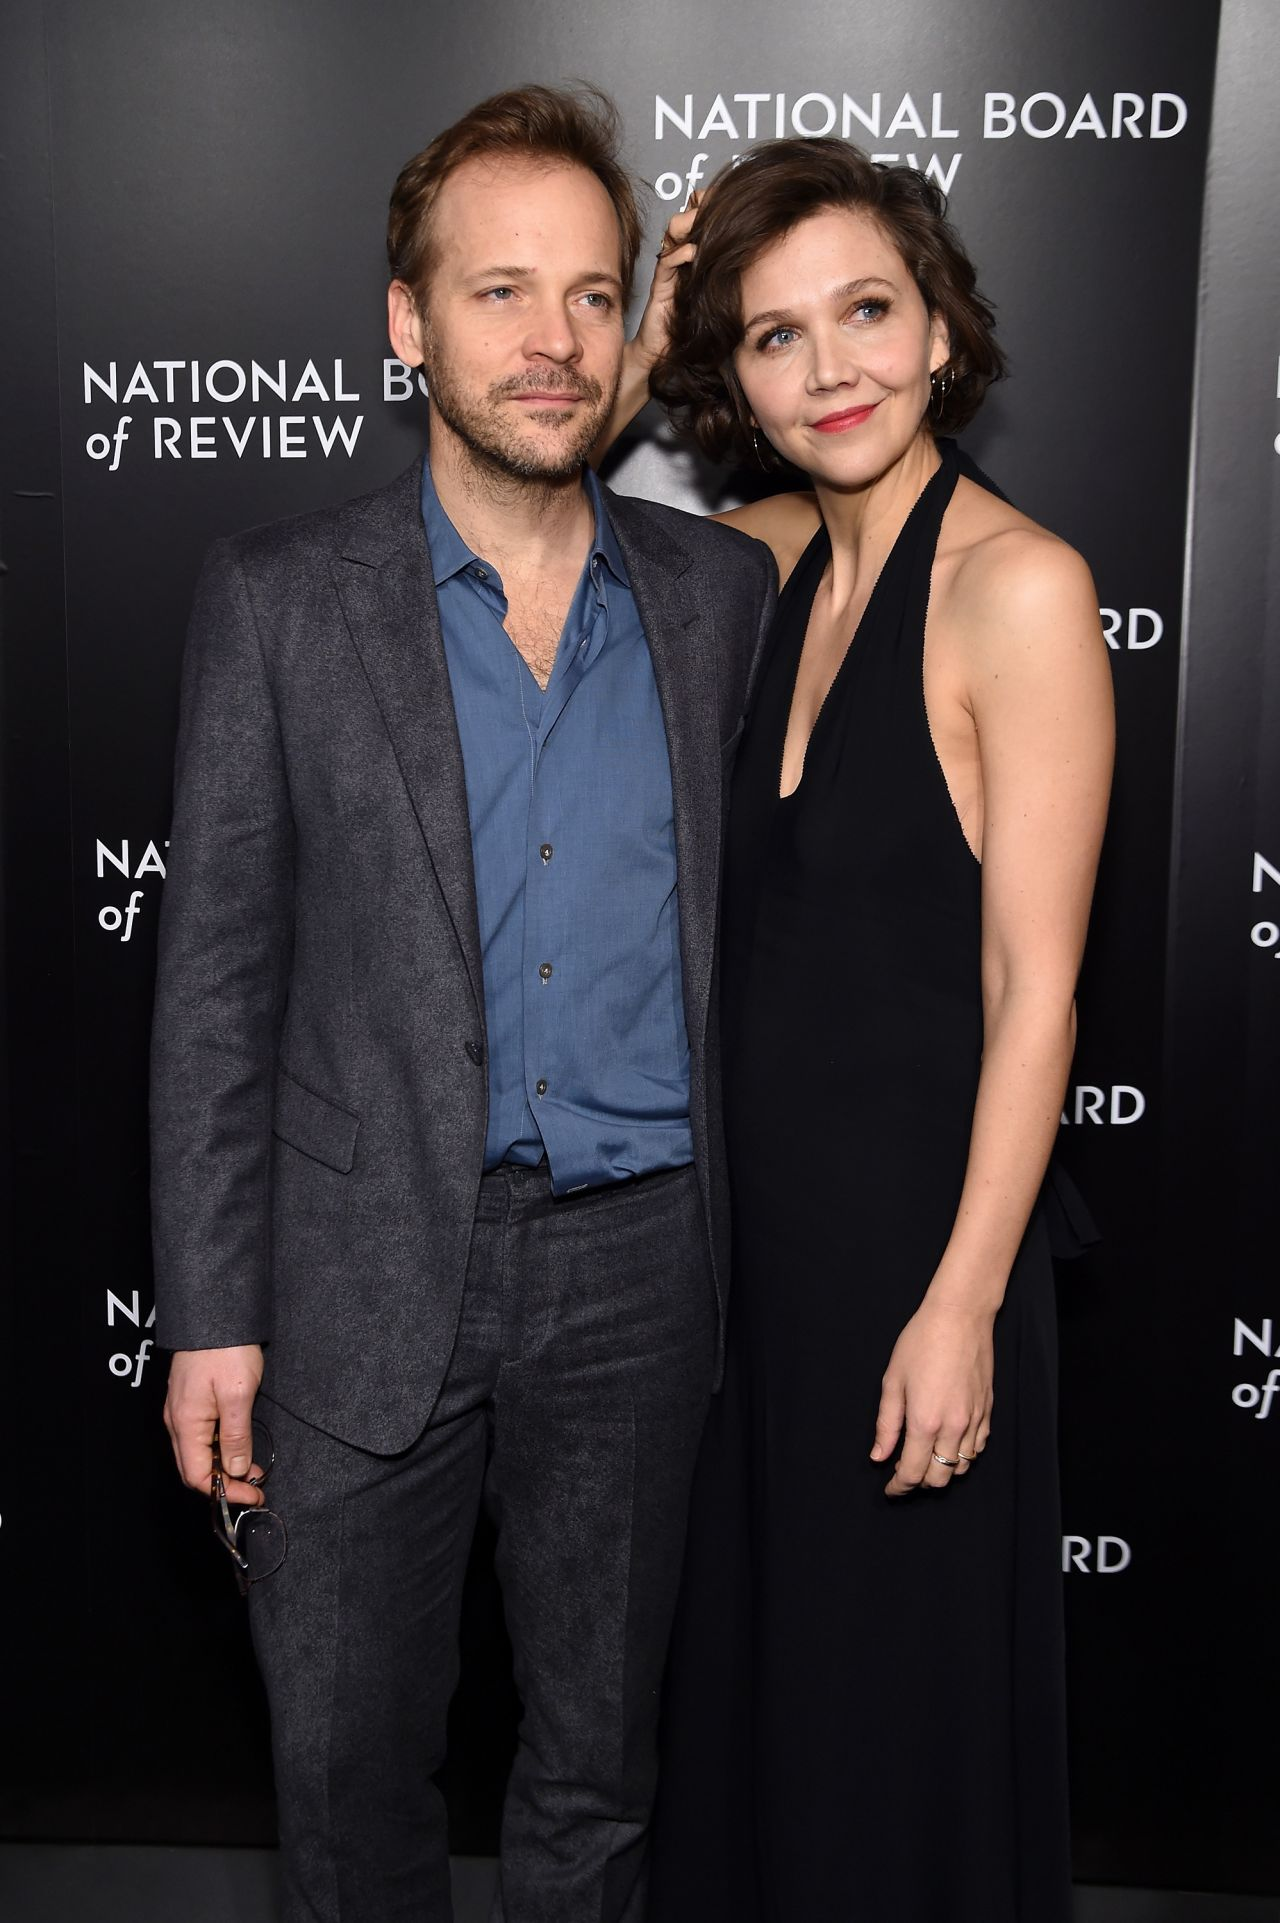 maggie-gyllenhaal-2015-national-board-of-review-awards-gala-in-new-york-city-7